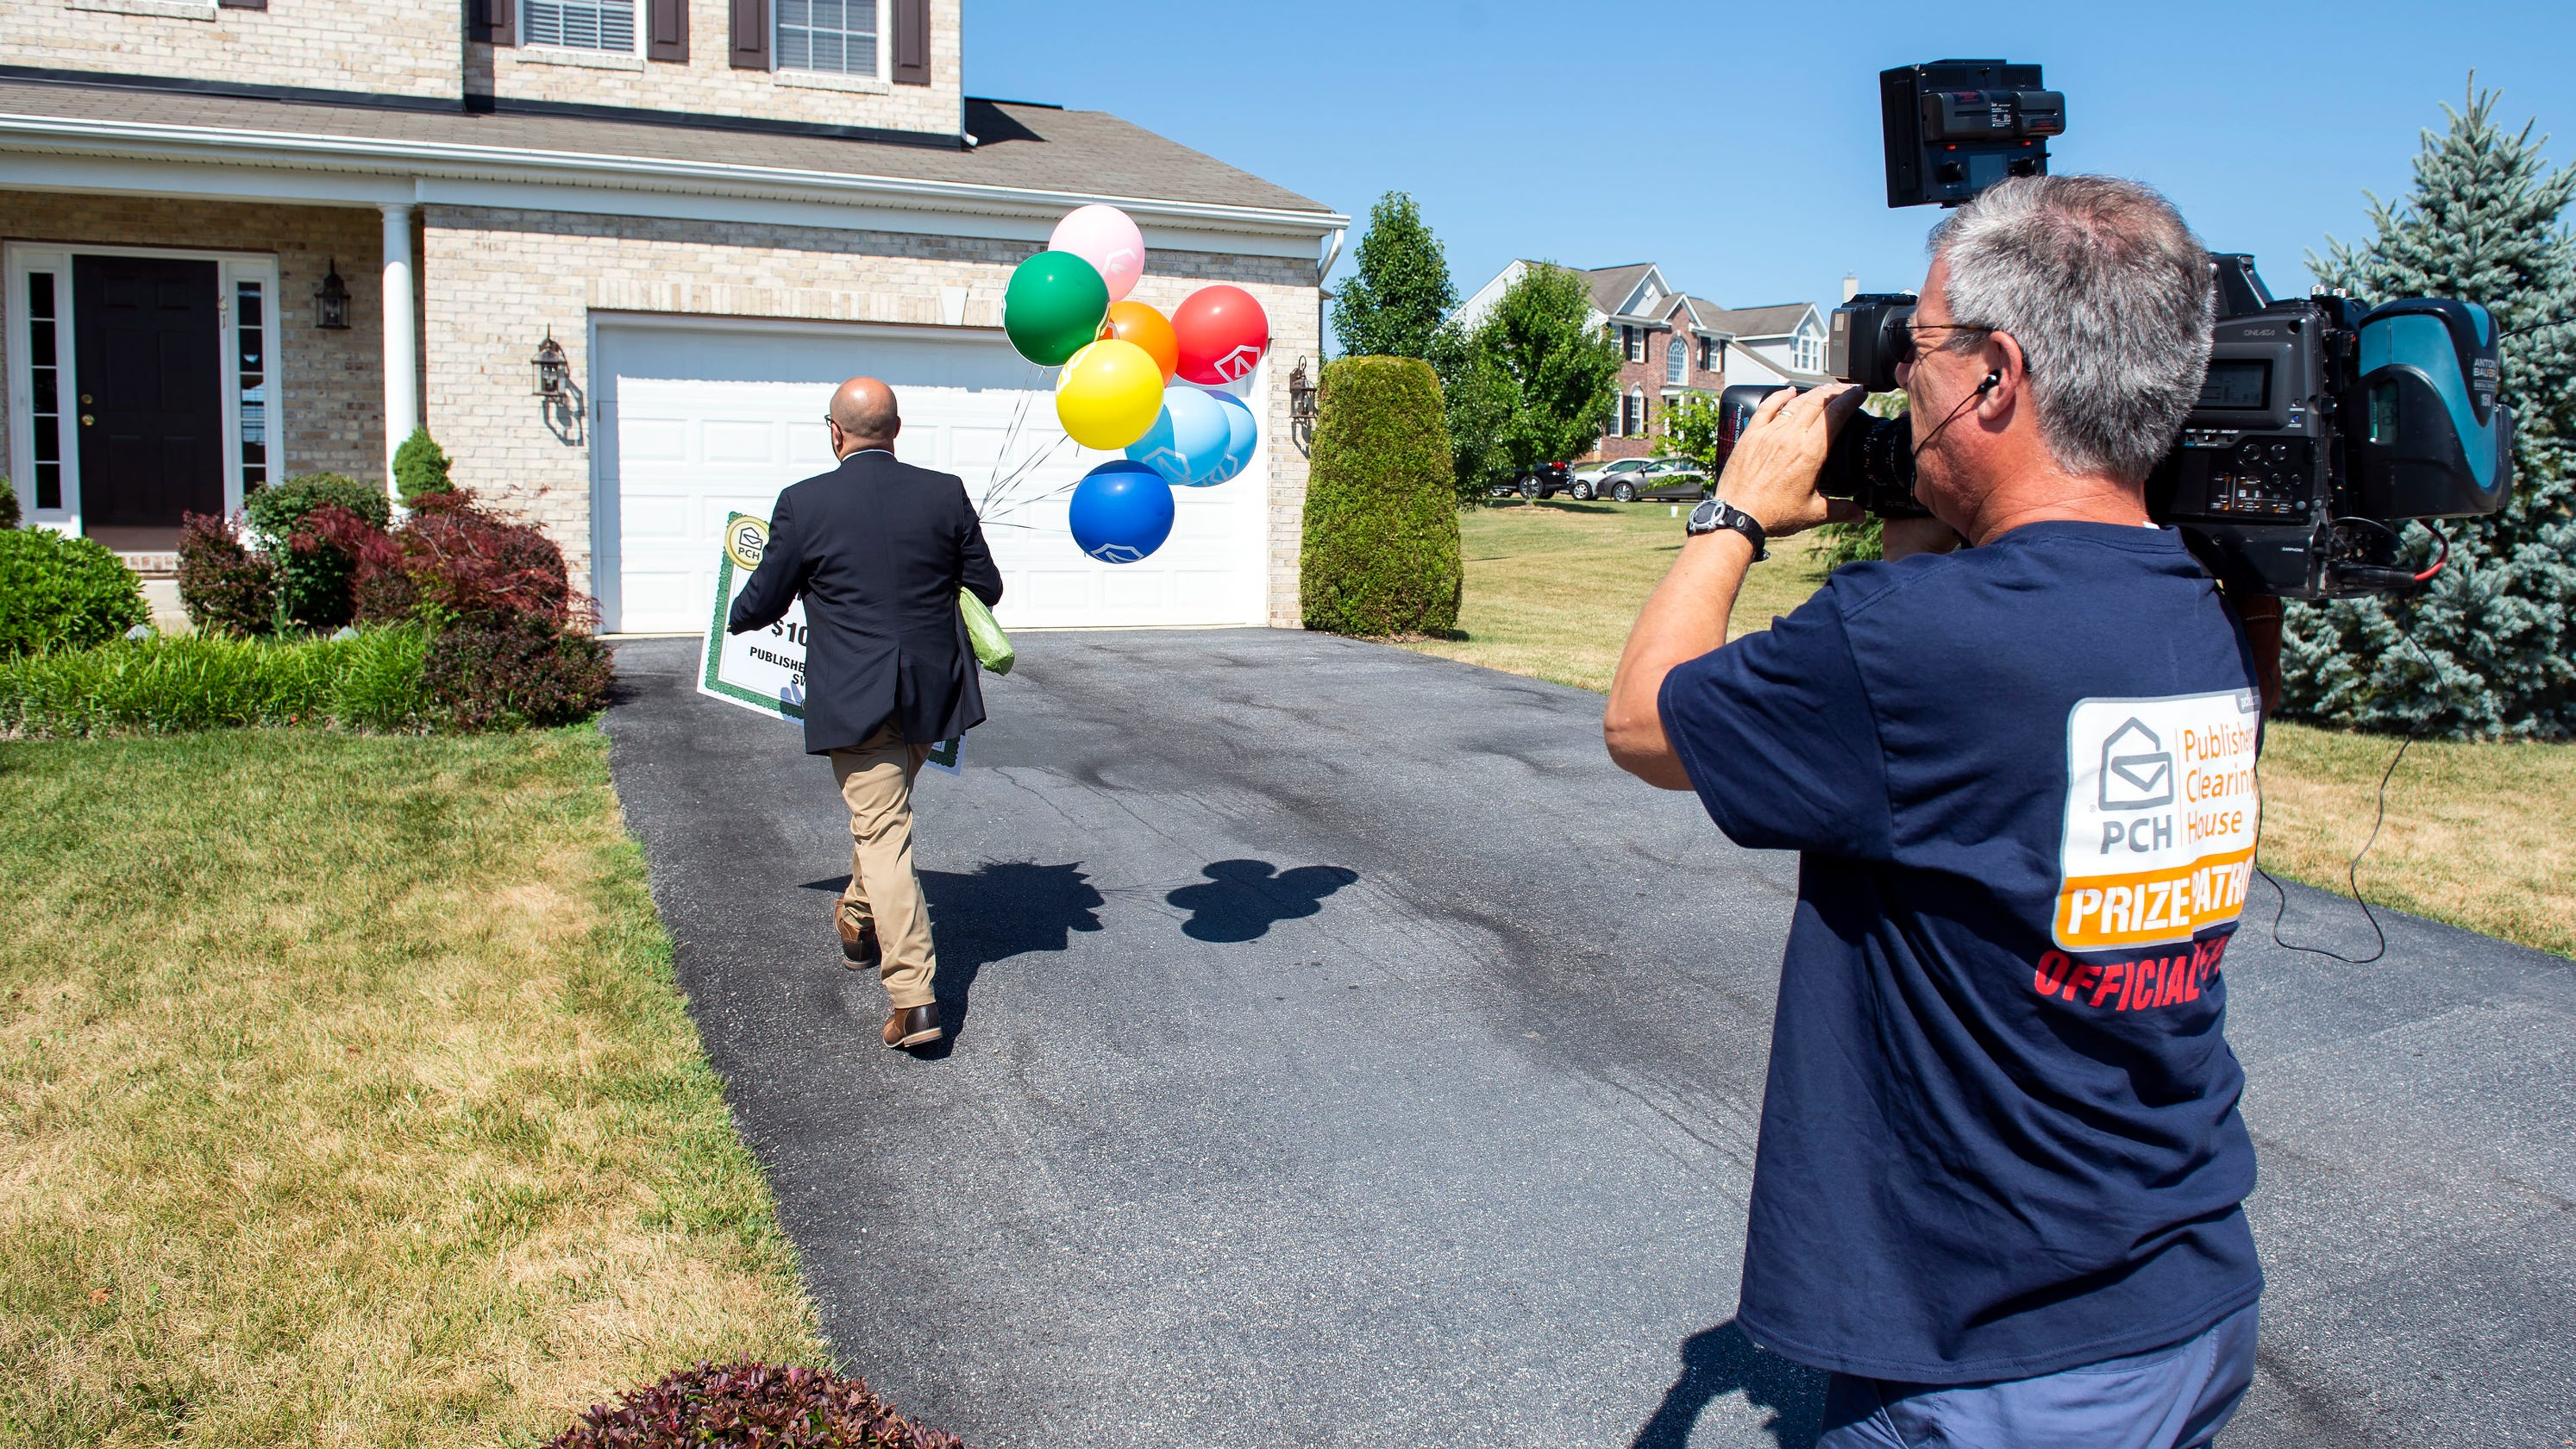 How is Publishers Clearing House funded? What are the odds of winning?